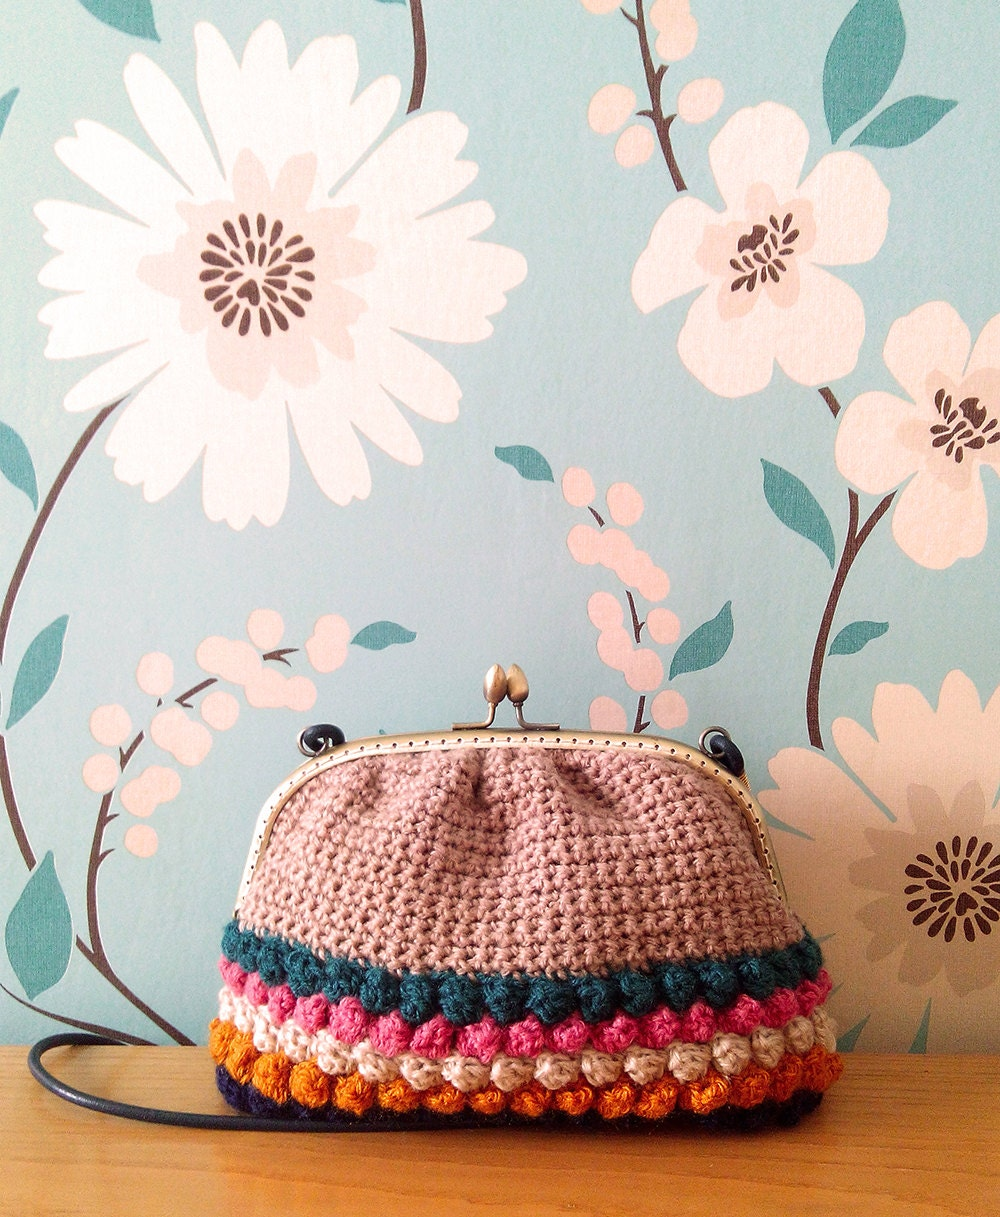 Handmade Crochet Bags And Purses : Frame shoulder bag // Handmade crochet leather by AngelinesMoreno